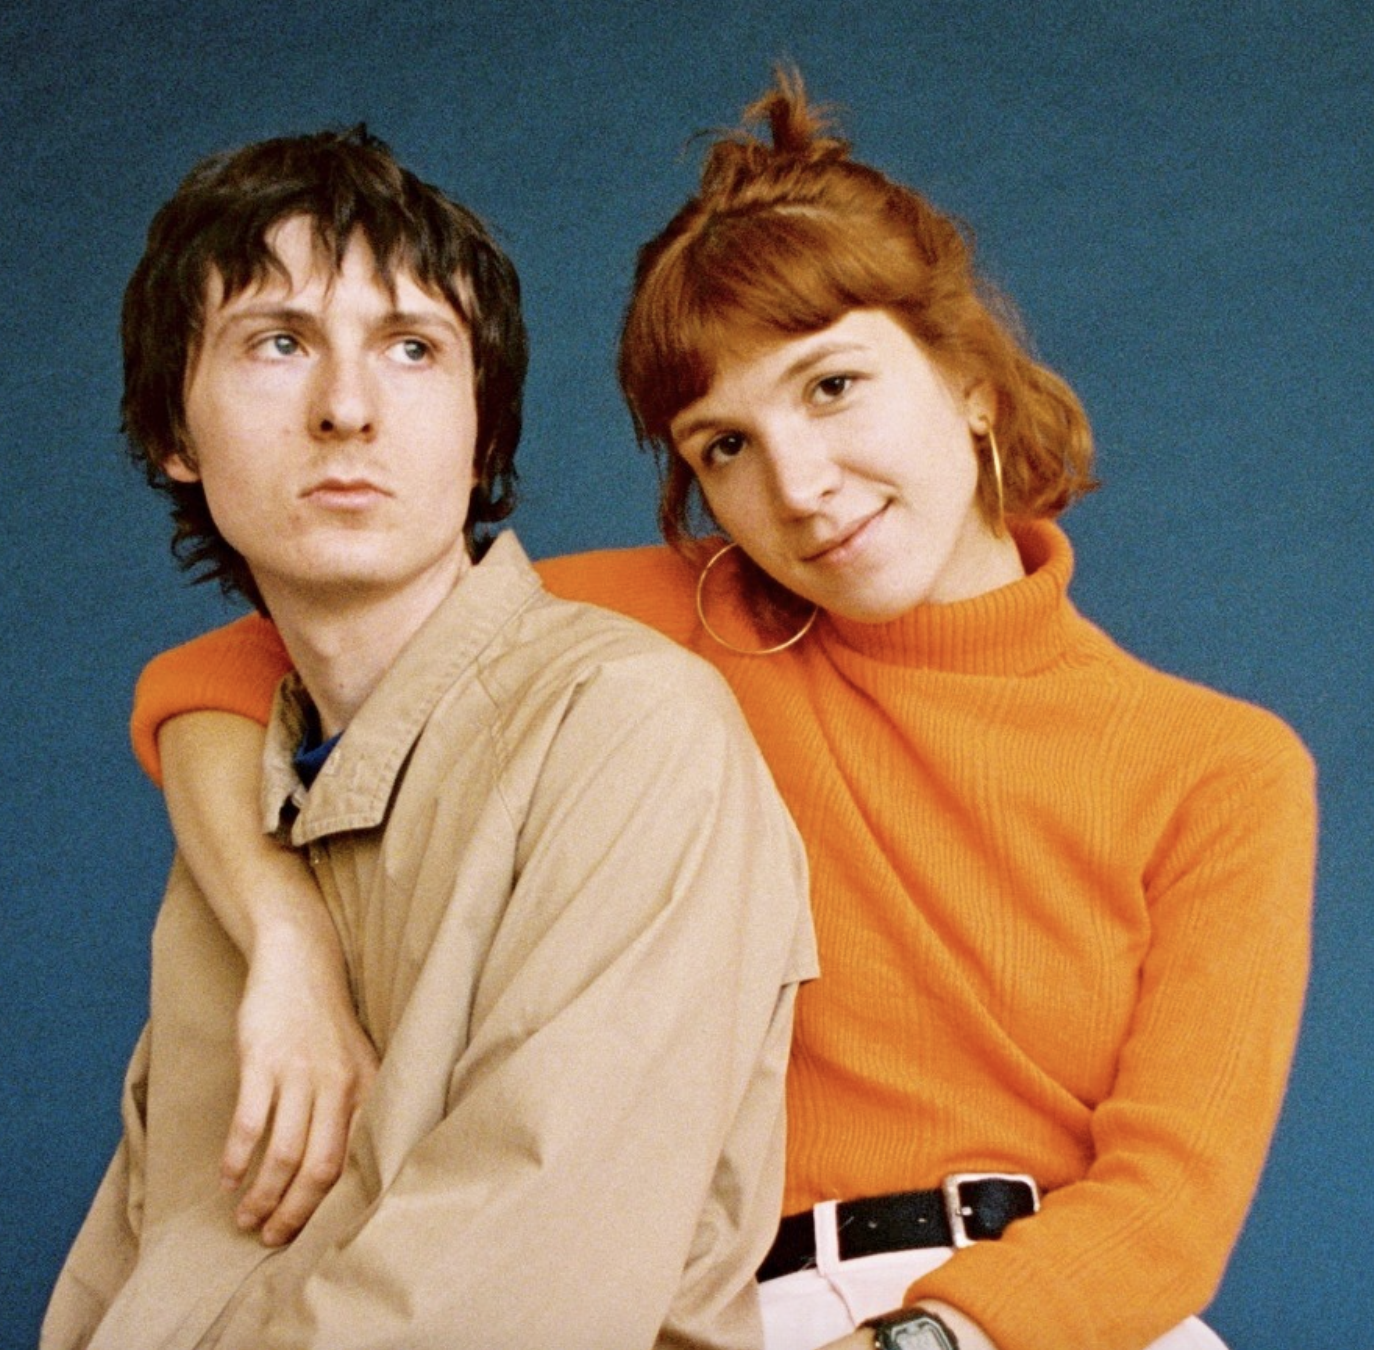 Between riffing guitars and complex melodies, this DIY punk band creates a contagious sound with symptoms of hand banding. Tune in at 11am and again at 7pm to hear new music from this week's Local Love, Twen.   For more information on the duo,  click here.